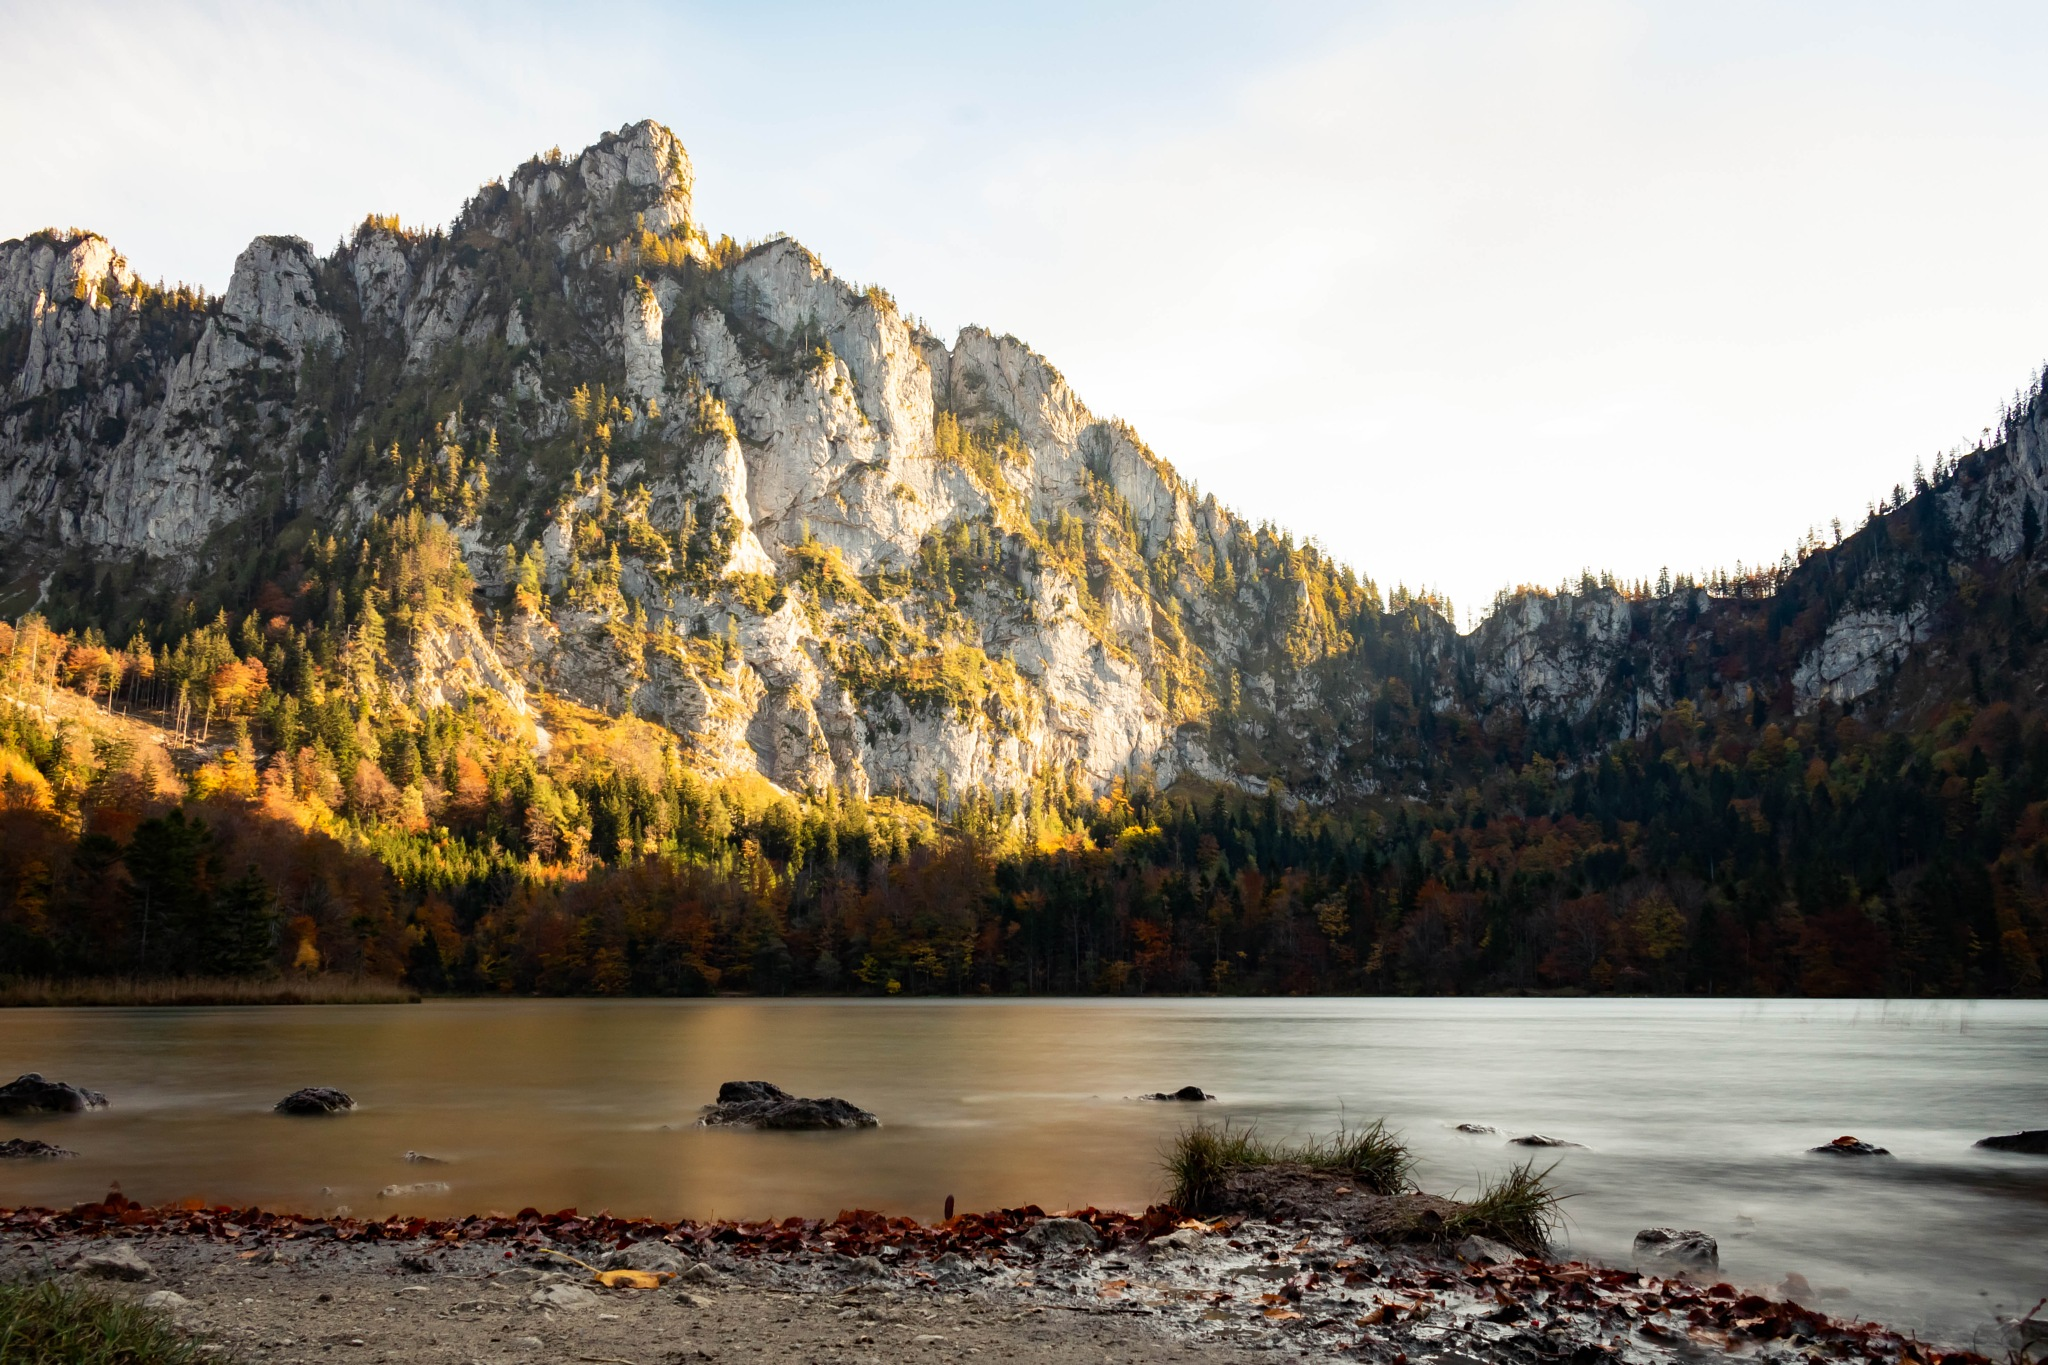 Laudachsee Austria by HerwigN